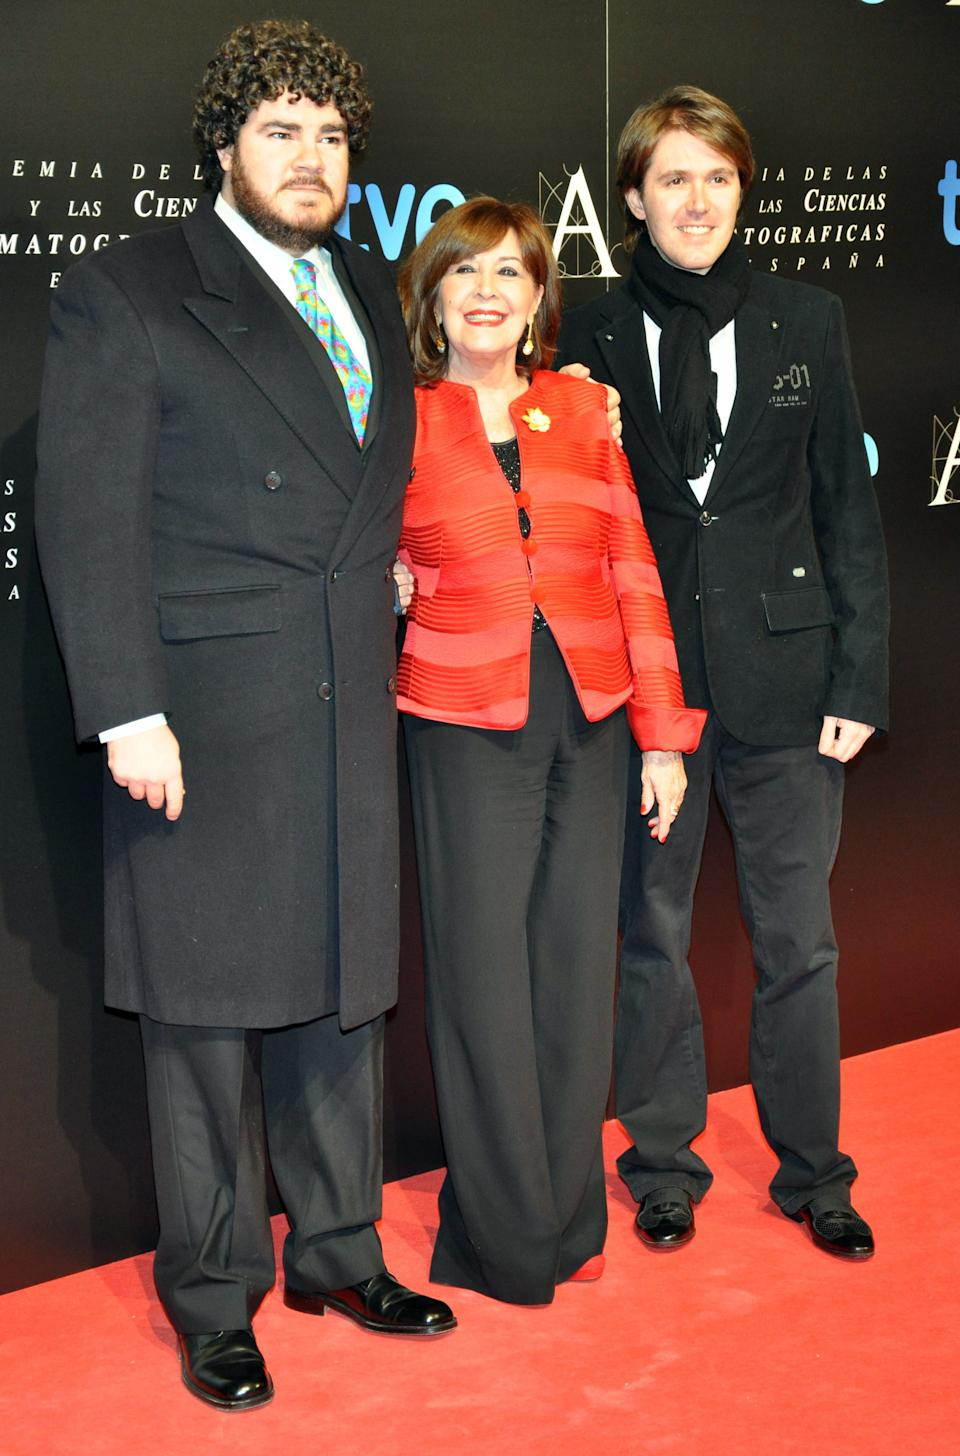 MADRID, SPAIN - JANUARY 28: Concha Velasco and her son Manuel Marso (R) and Paco Marso (L) attend Goya awards final candidates party on January 28, 2013 in Madrid, Spain.  (Photo by Europa Press/Europa Press via Getty Images)